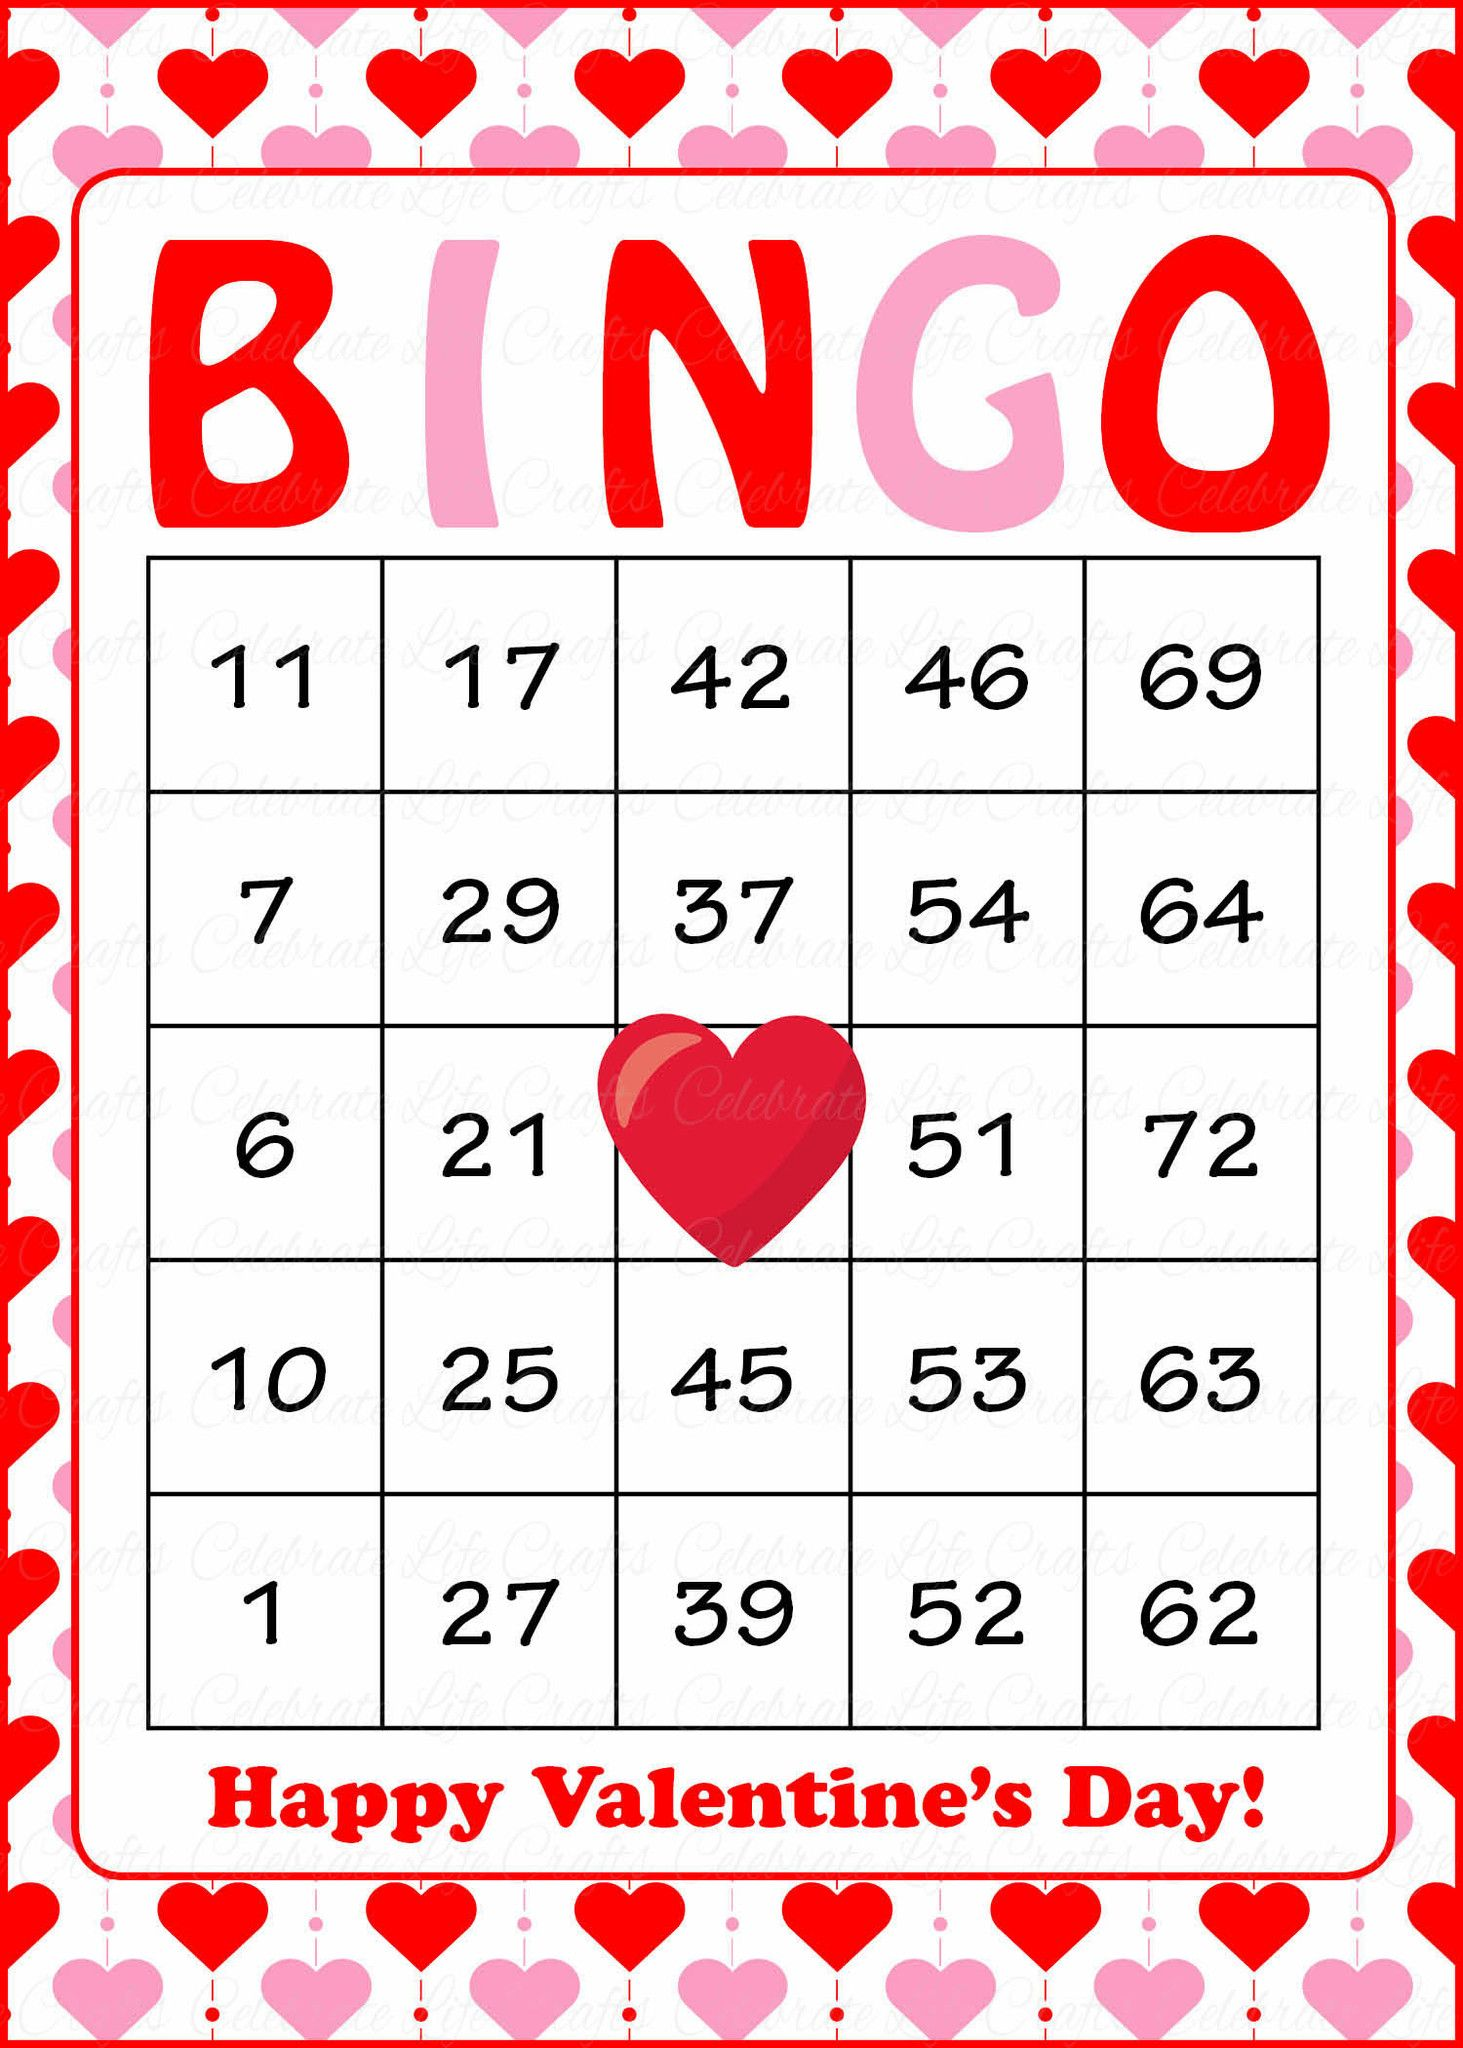 valentines bingo cards printable download prefilled valentines party games red pink hearts v1005